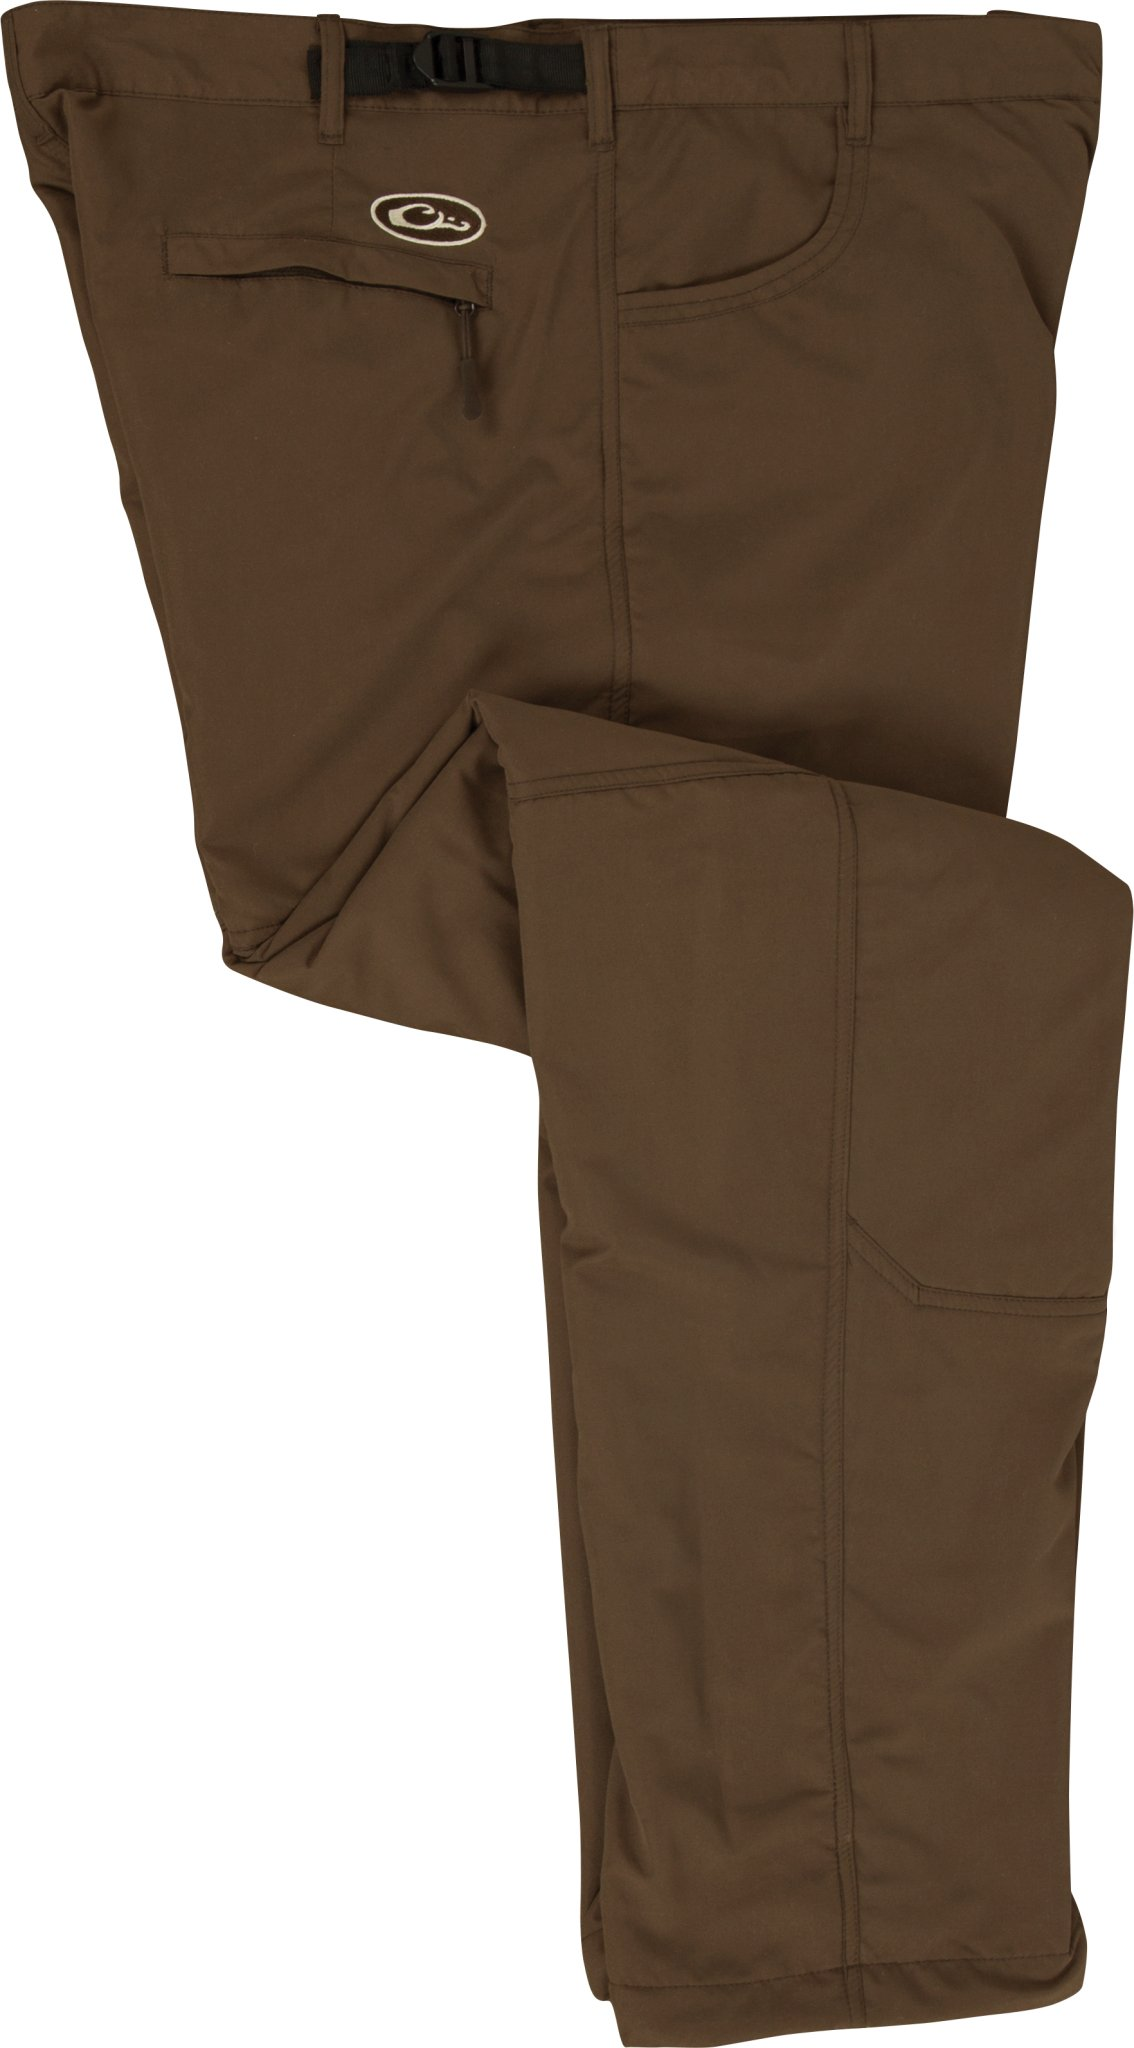 Jean Cut Under-Wader Pant - Fleece-Lined Brown Size Small